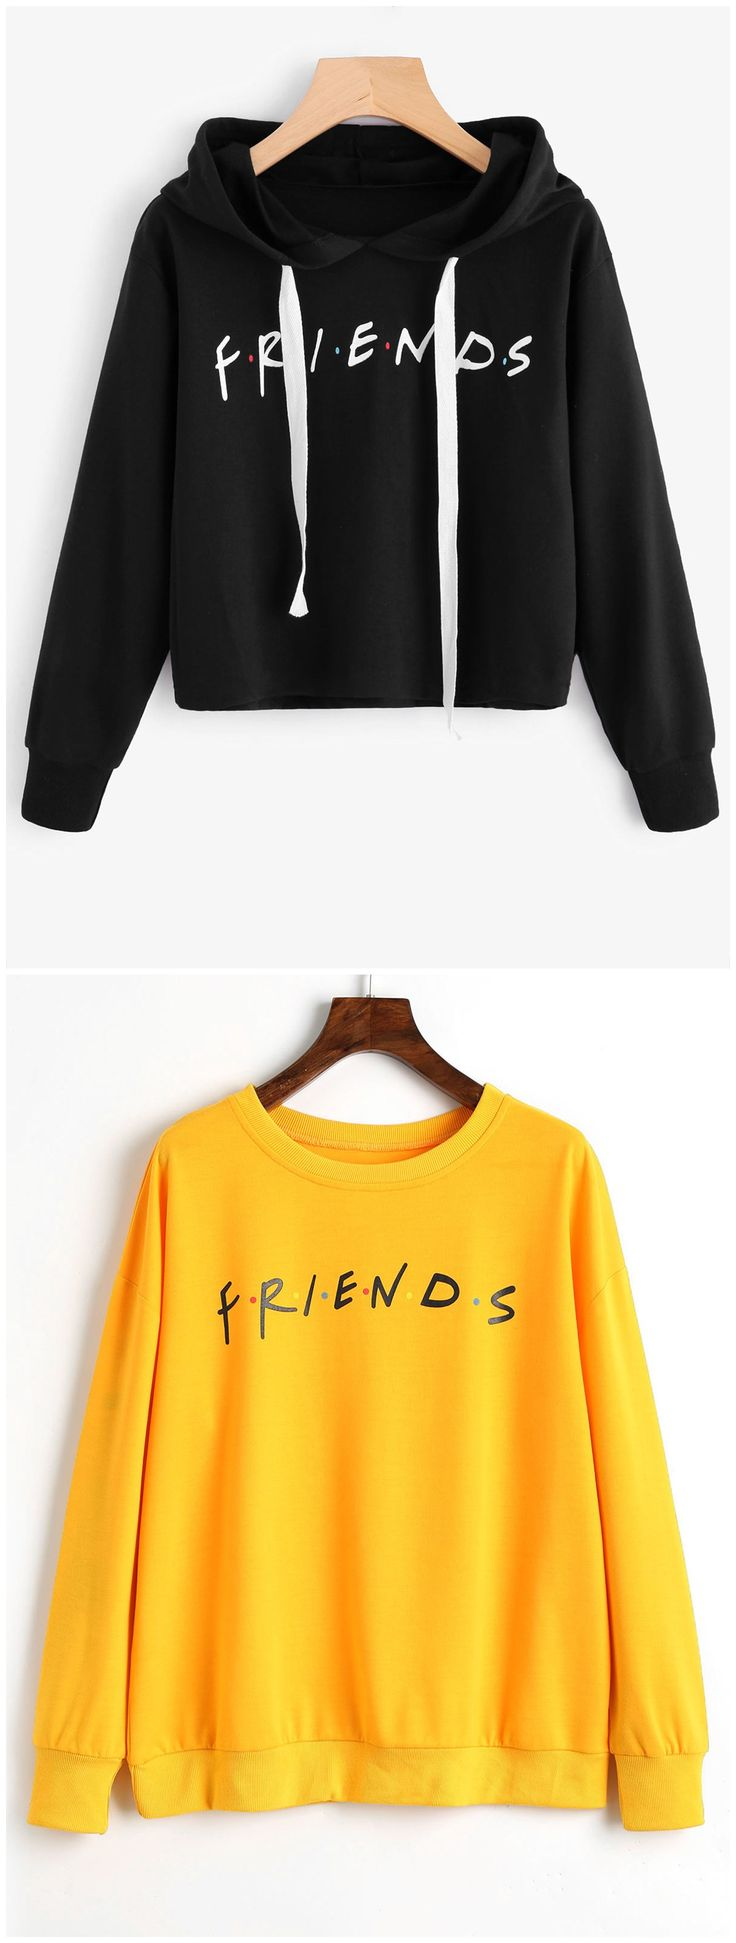 Up to 68% OFF! Drawstring Loose Letter Cropped Hoodie. #Zaful #hoodies Zaful,zaful sweater,zaful outfits,fashion,style,tops,outfits,blouses,sweatshirts,hoodies,cardigan,sweater,cute sweatshirt,floral hoodie,cropped hoodies,pearl sweatshirt,fall,winter,winter outfits,winter fashion,fall fashion,fall outfits,Christmas,ugly,ugly Christmas,Thanksgiving,gift,Christmas hoodies,Black Friday,Cyber Monday @zaful Extra 10% OFF Code:ZF2017